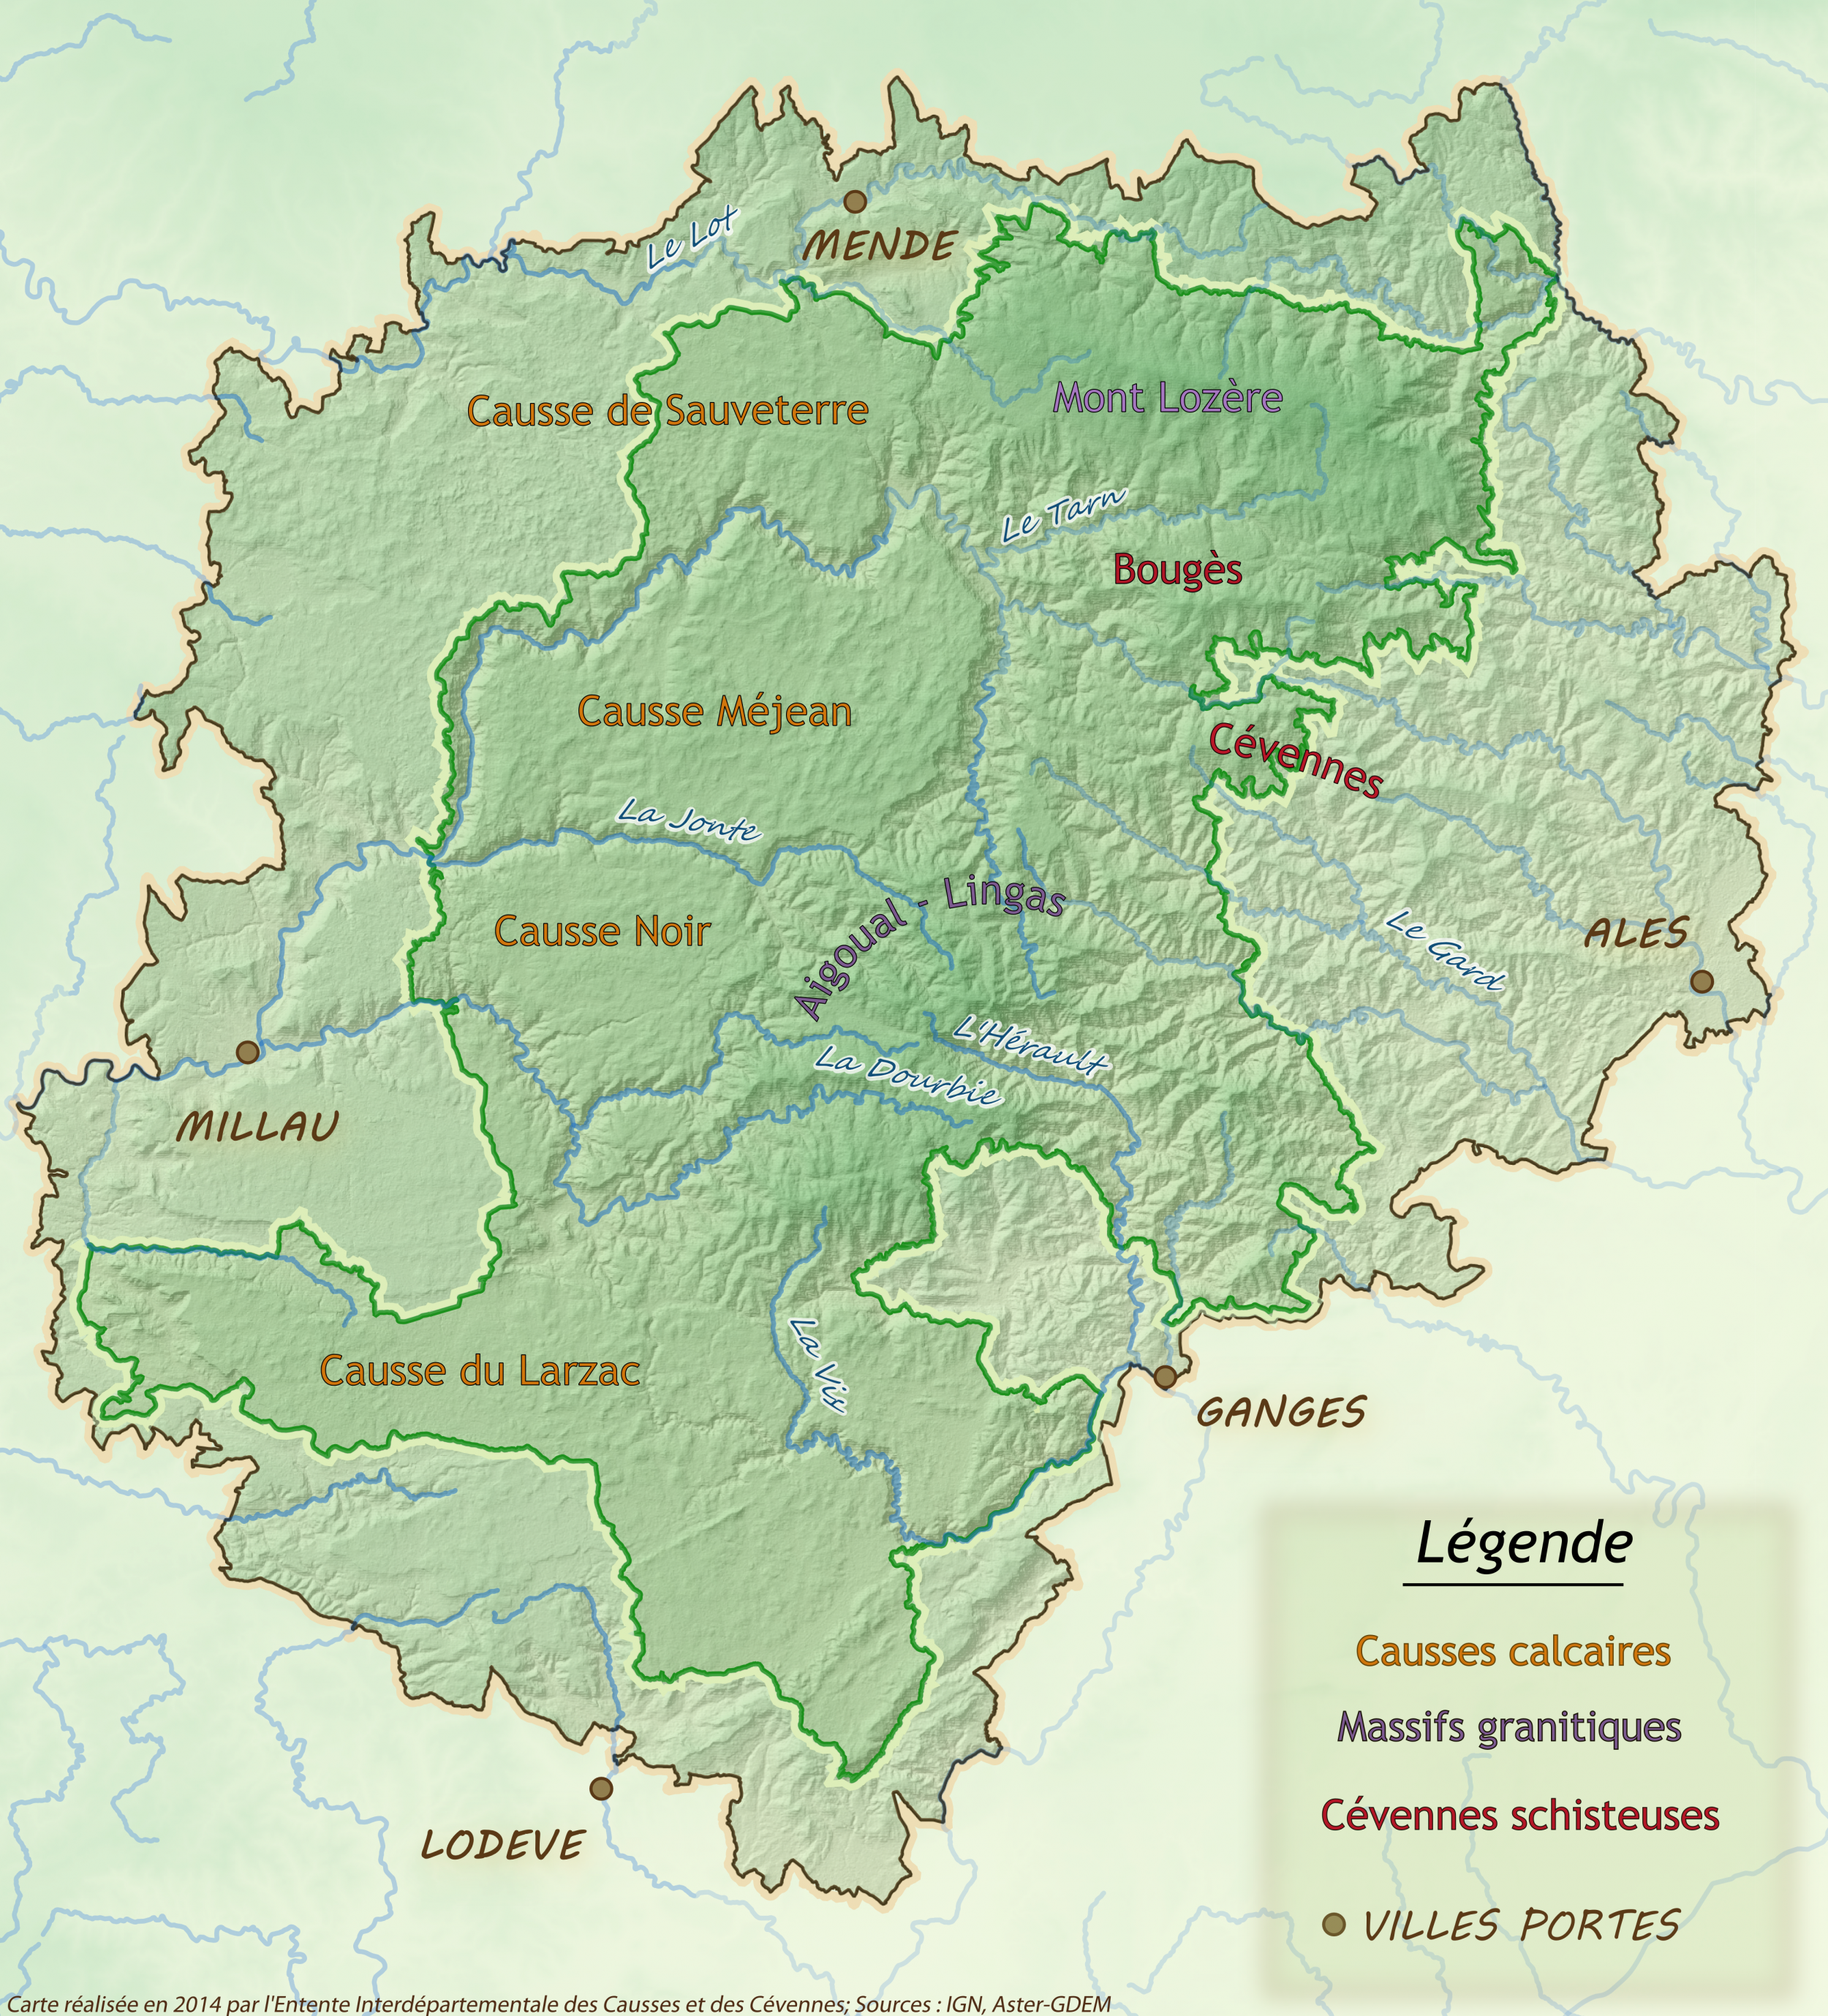 Map of the territory Causses and Cvennes